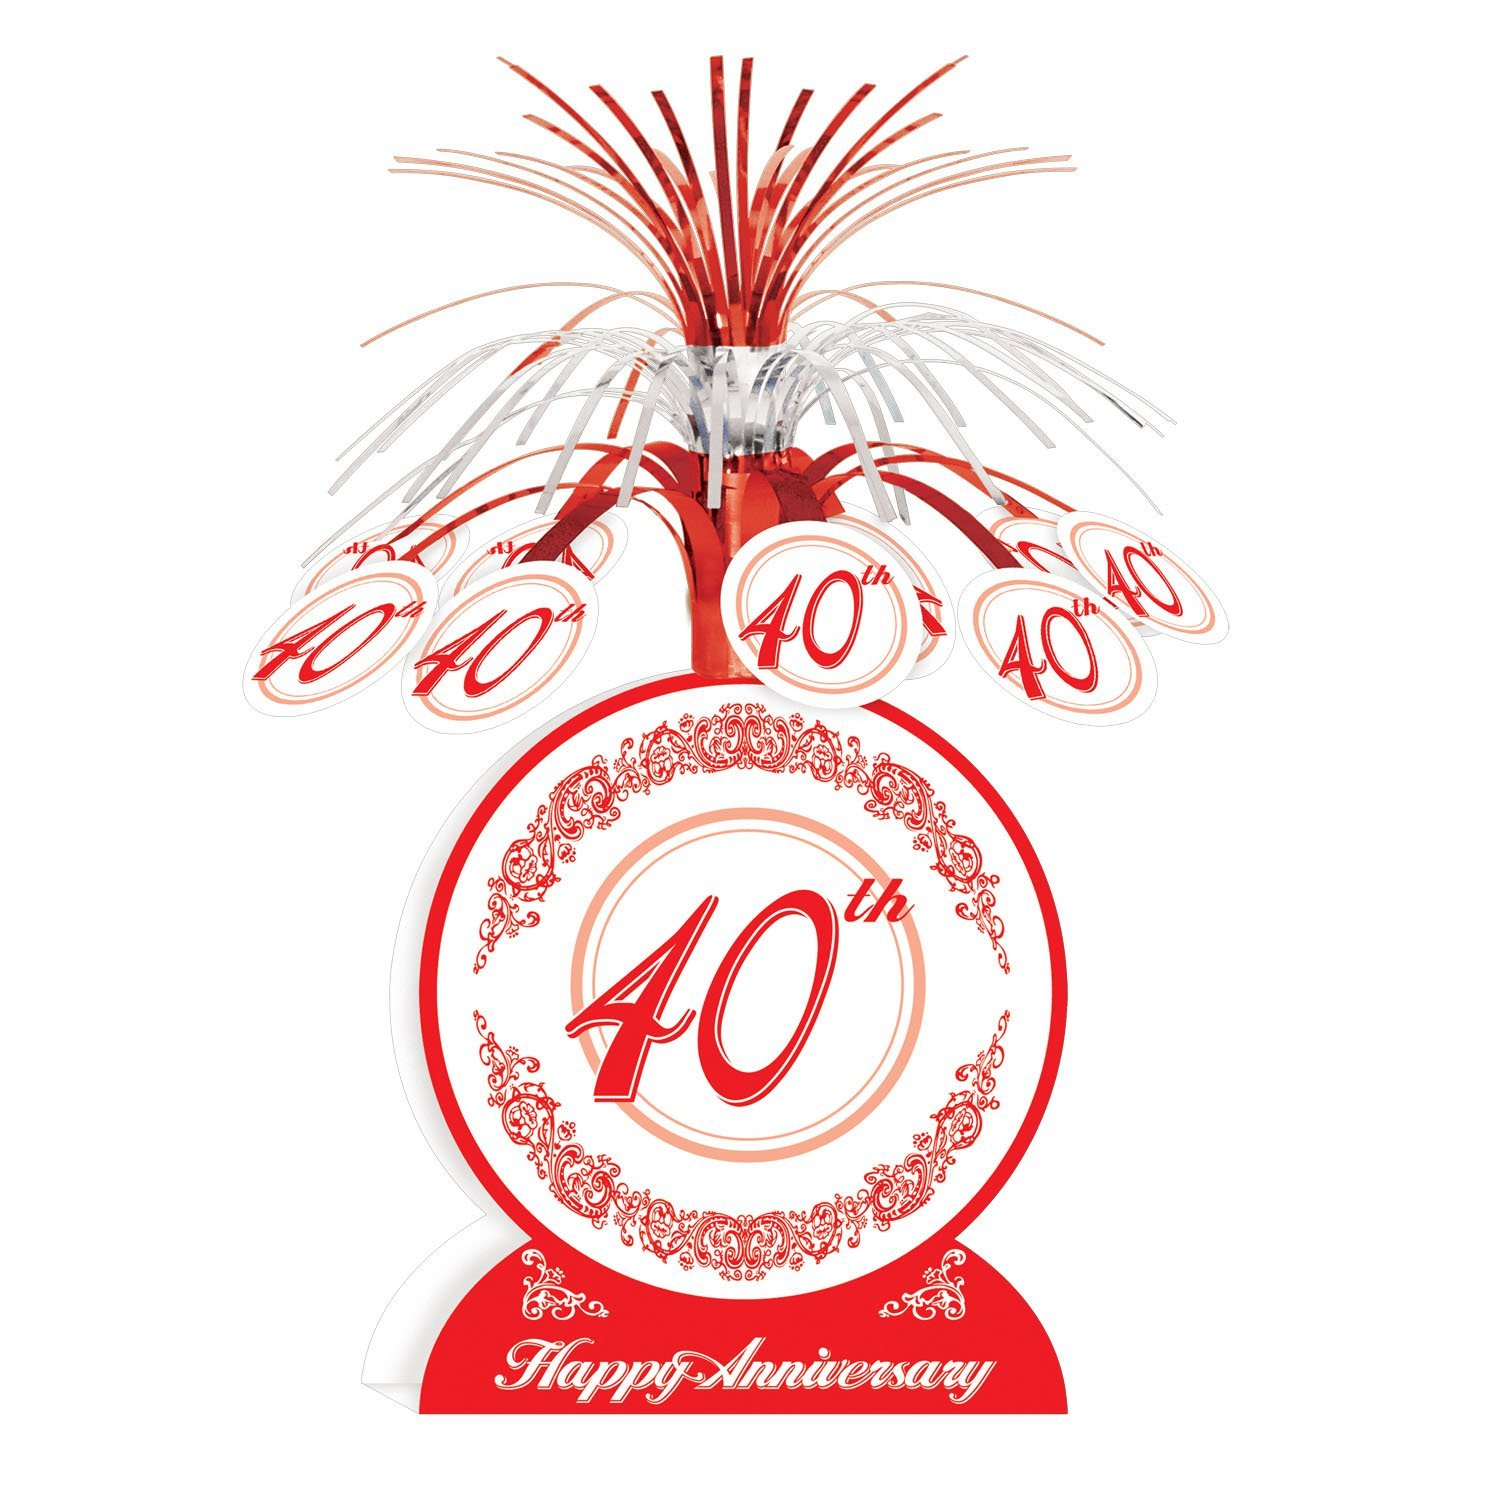 Amazon.com: 40th Anniversary Centerpiece Party Accessory (1 count ...